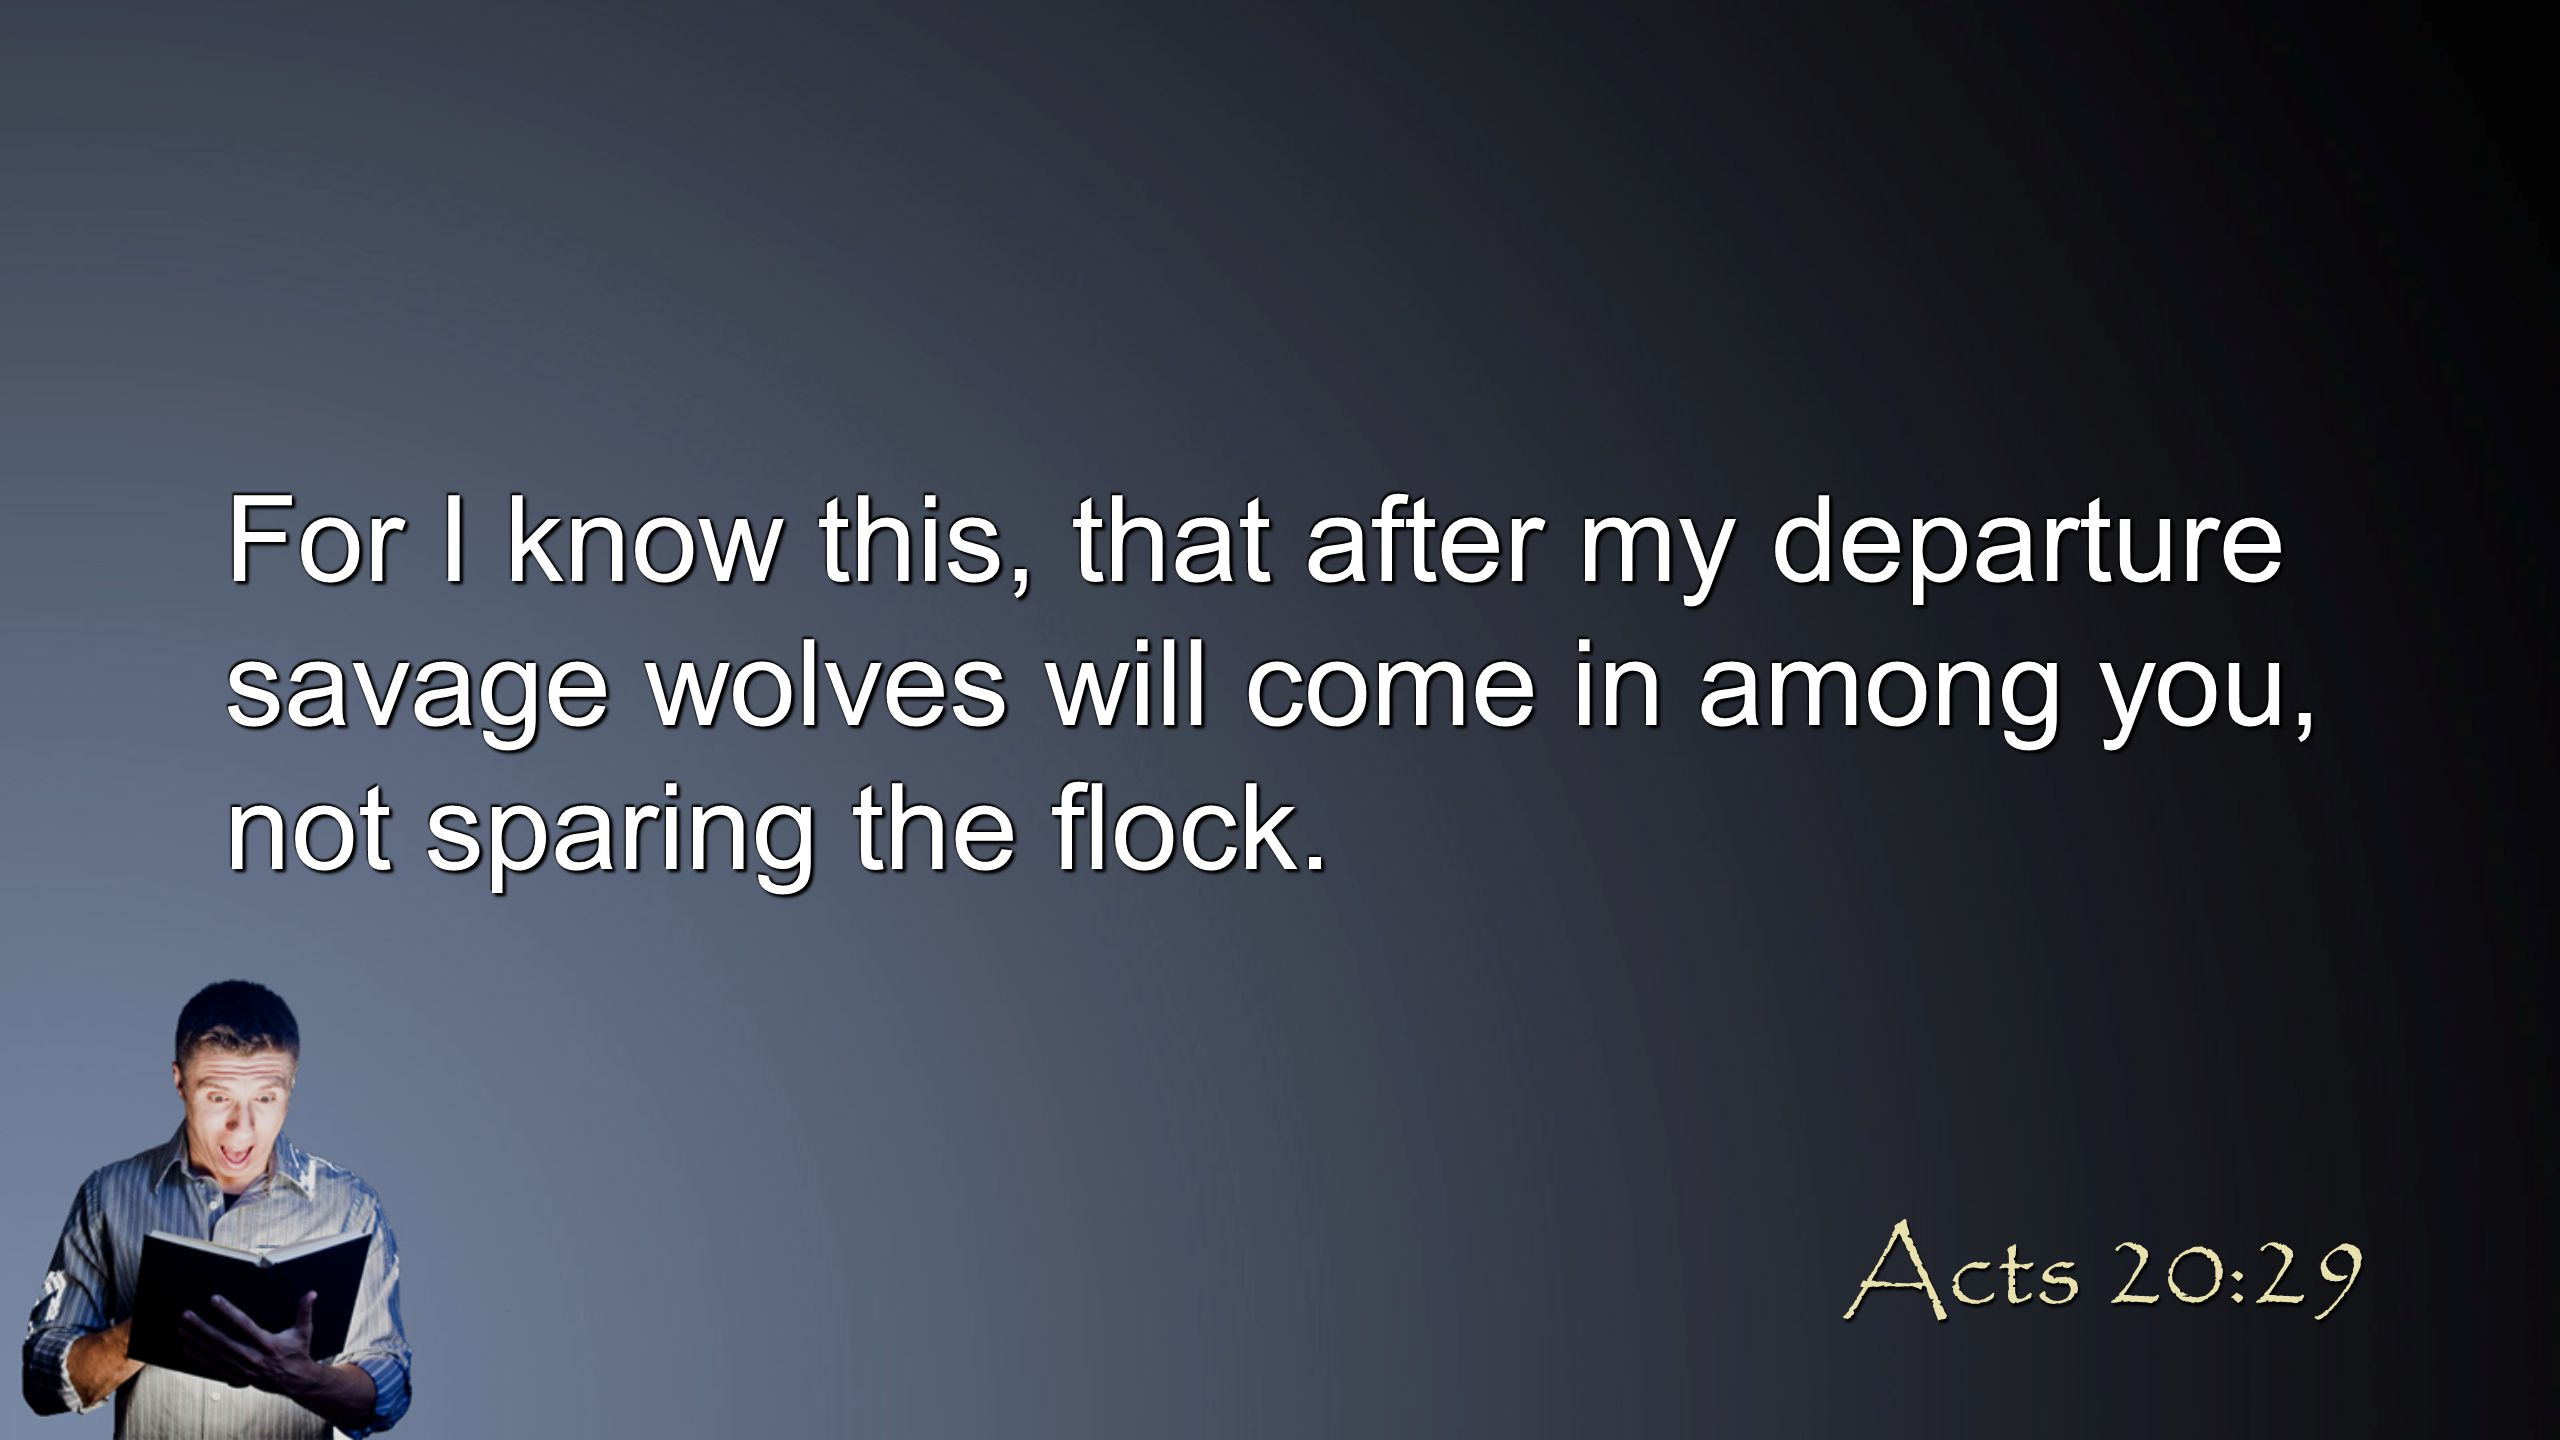 For I know this, that after my departure savage wolves will come in among you, not sparing the flock. Acts 20:29